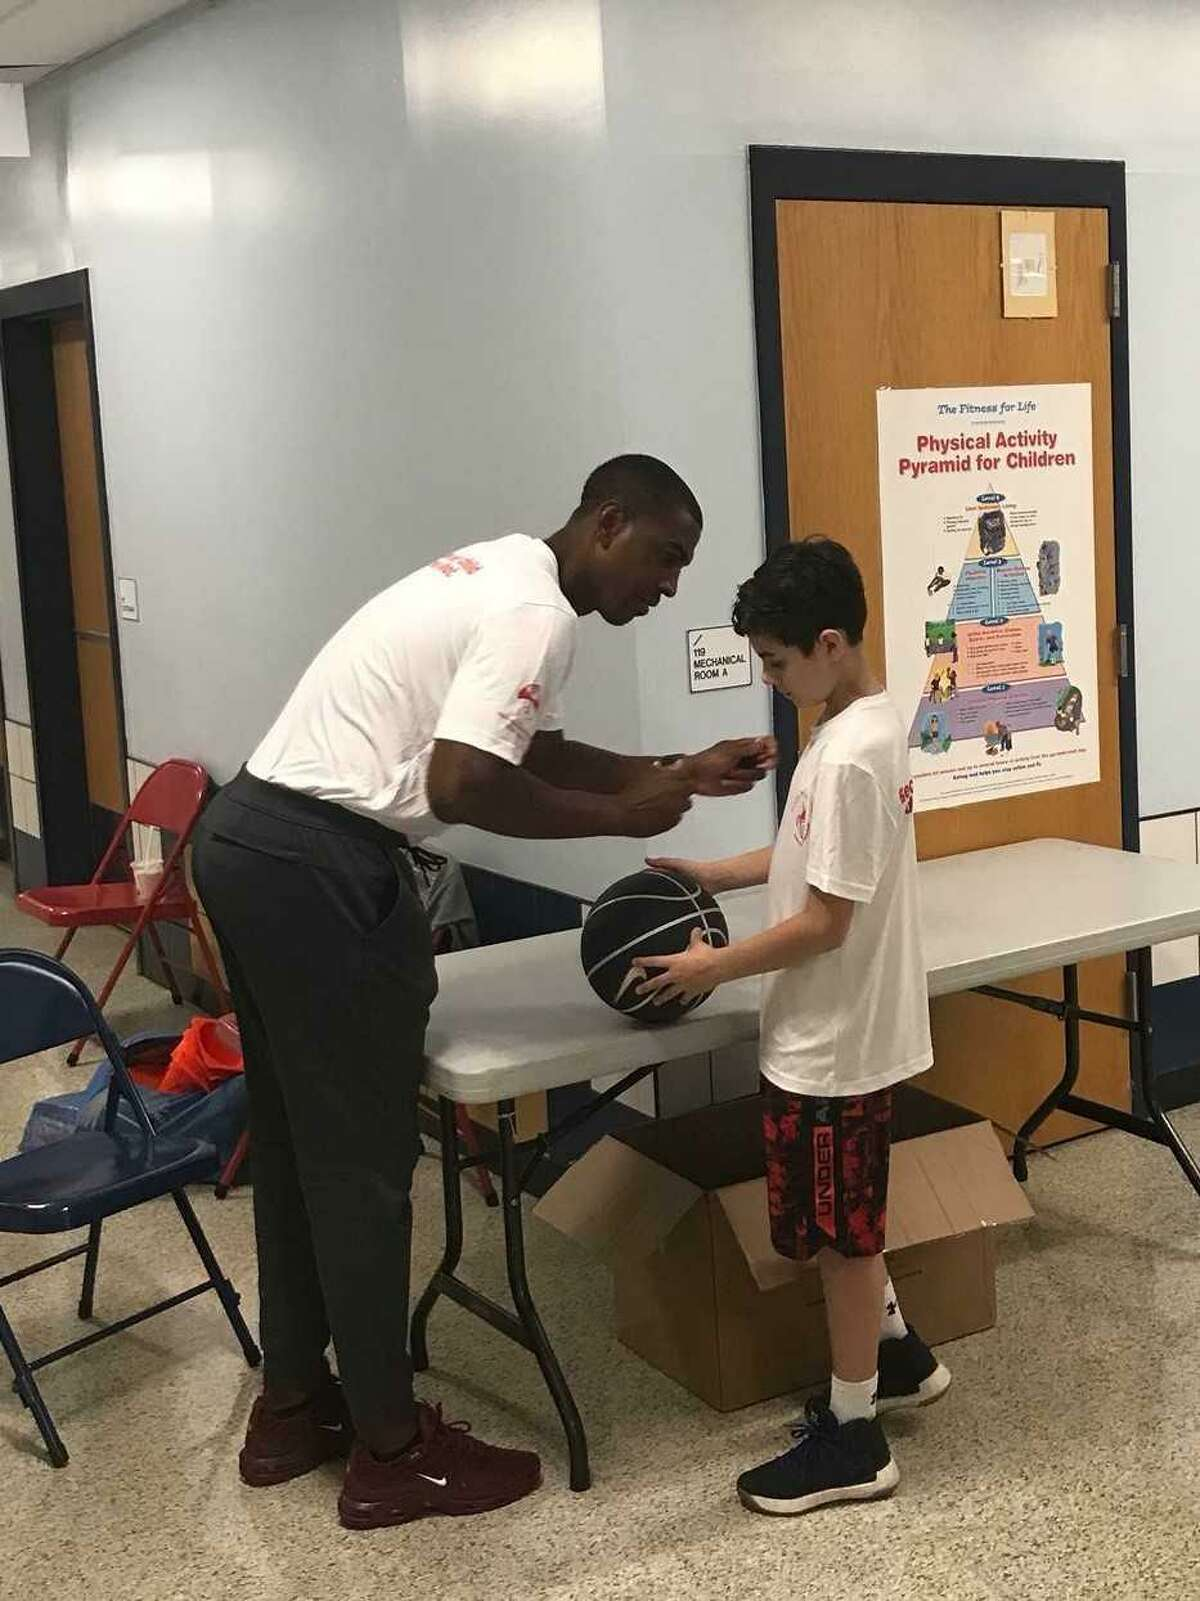 Former UConn coach Kevin Ollie signs an autograph during a charity event in Gales Ferry. (Jeff Jacobs/Hearst Connecticut Media Group )